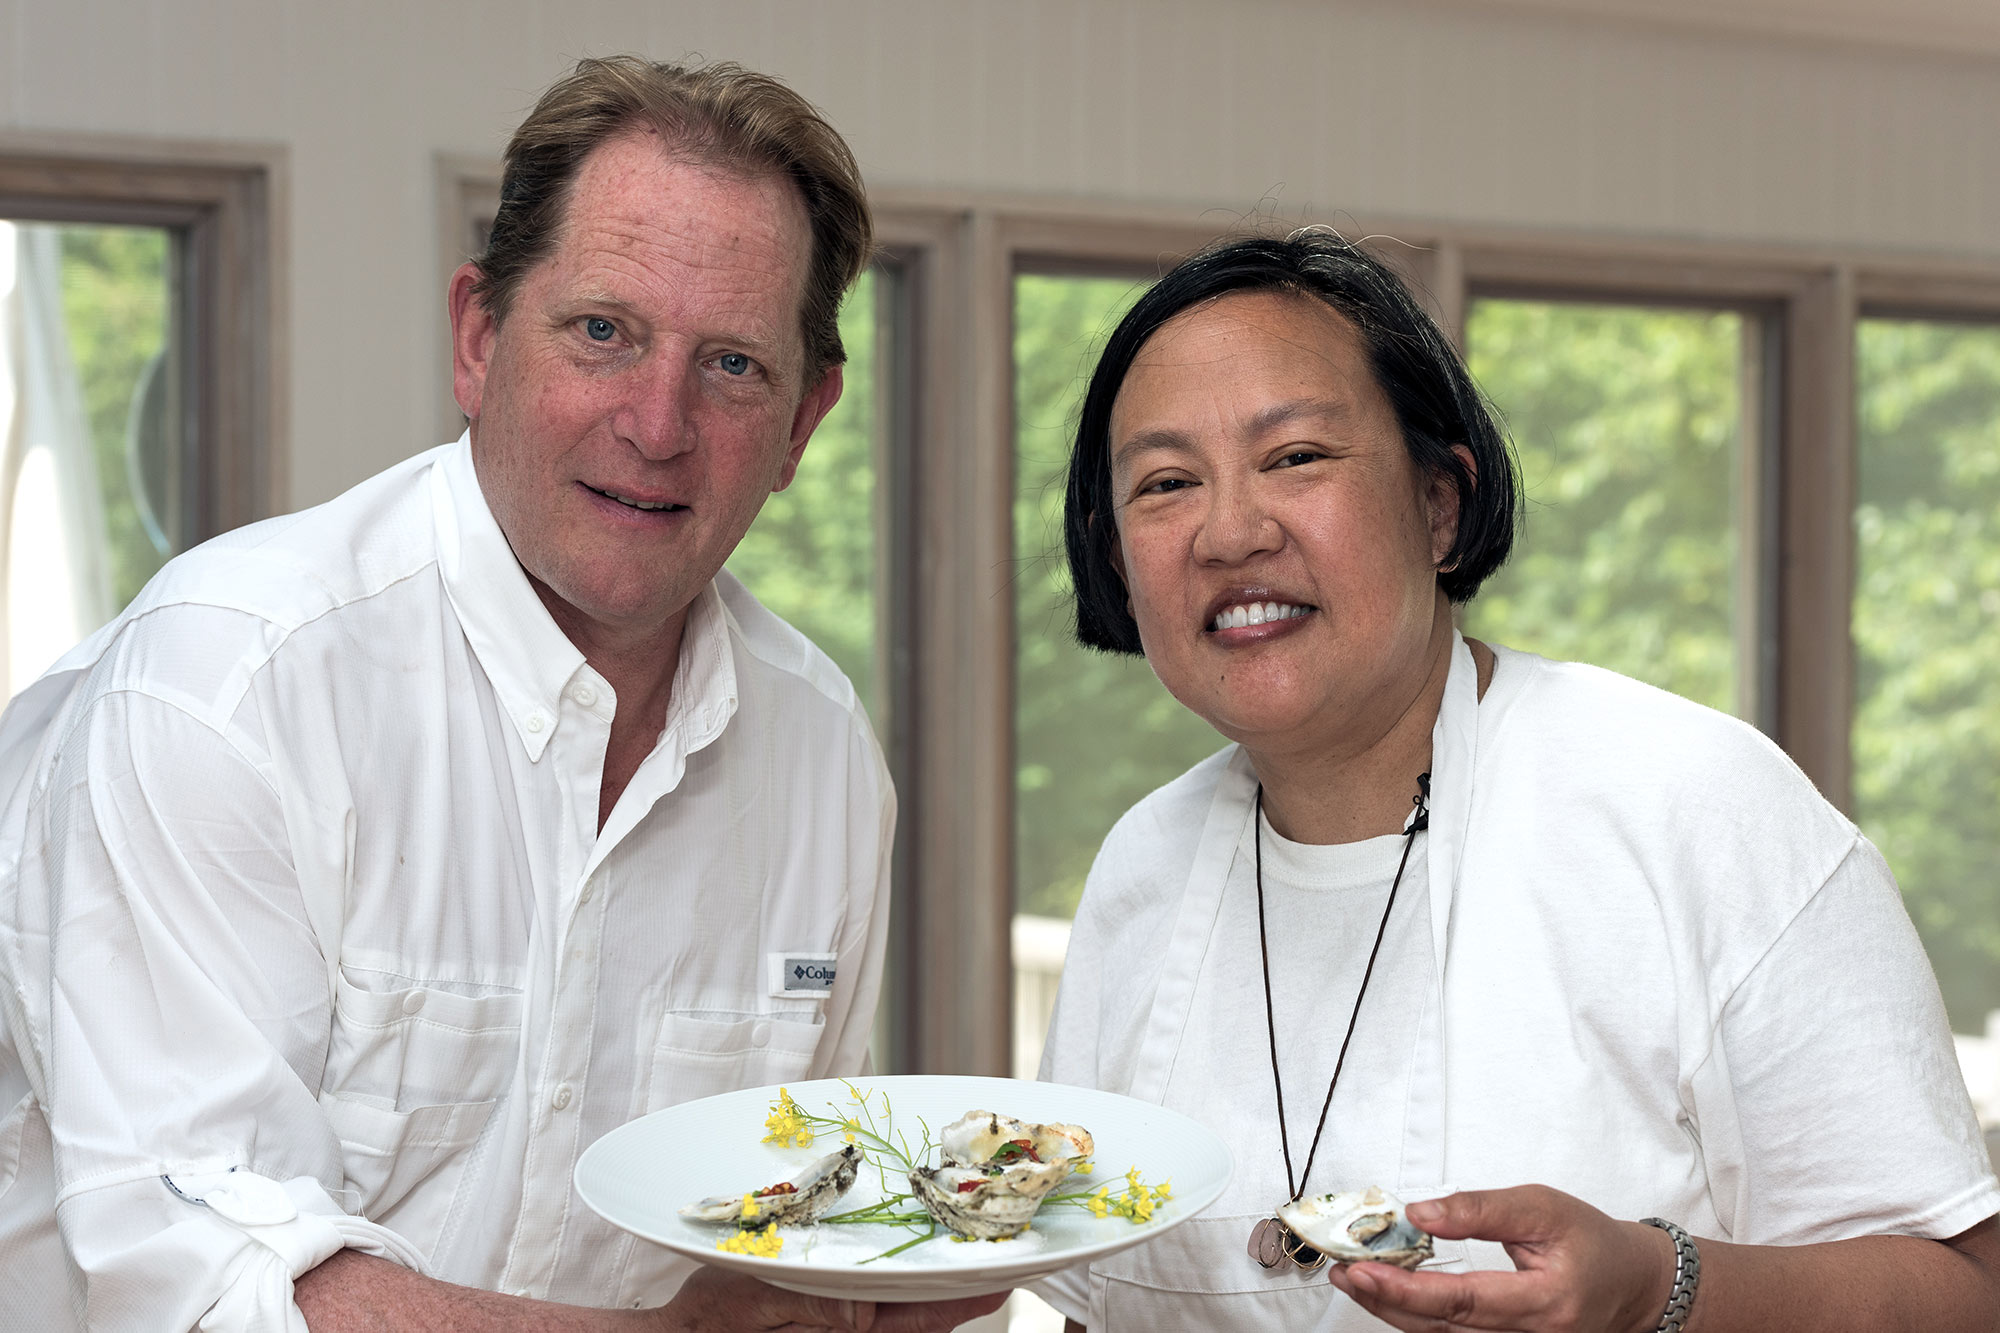 Chef Anita Lo and Chef Colin Ambrose | Moriches Bay, New York